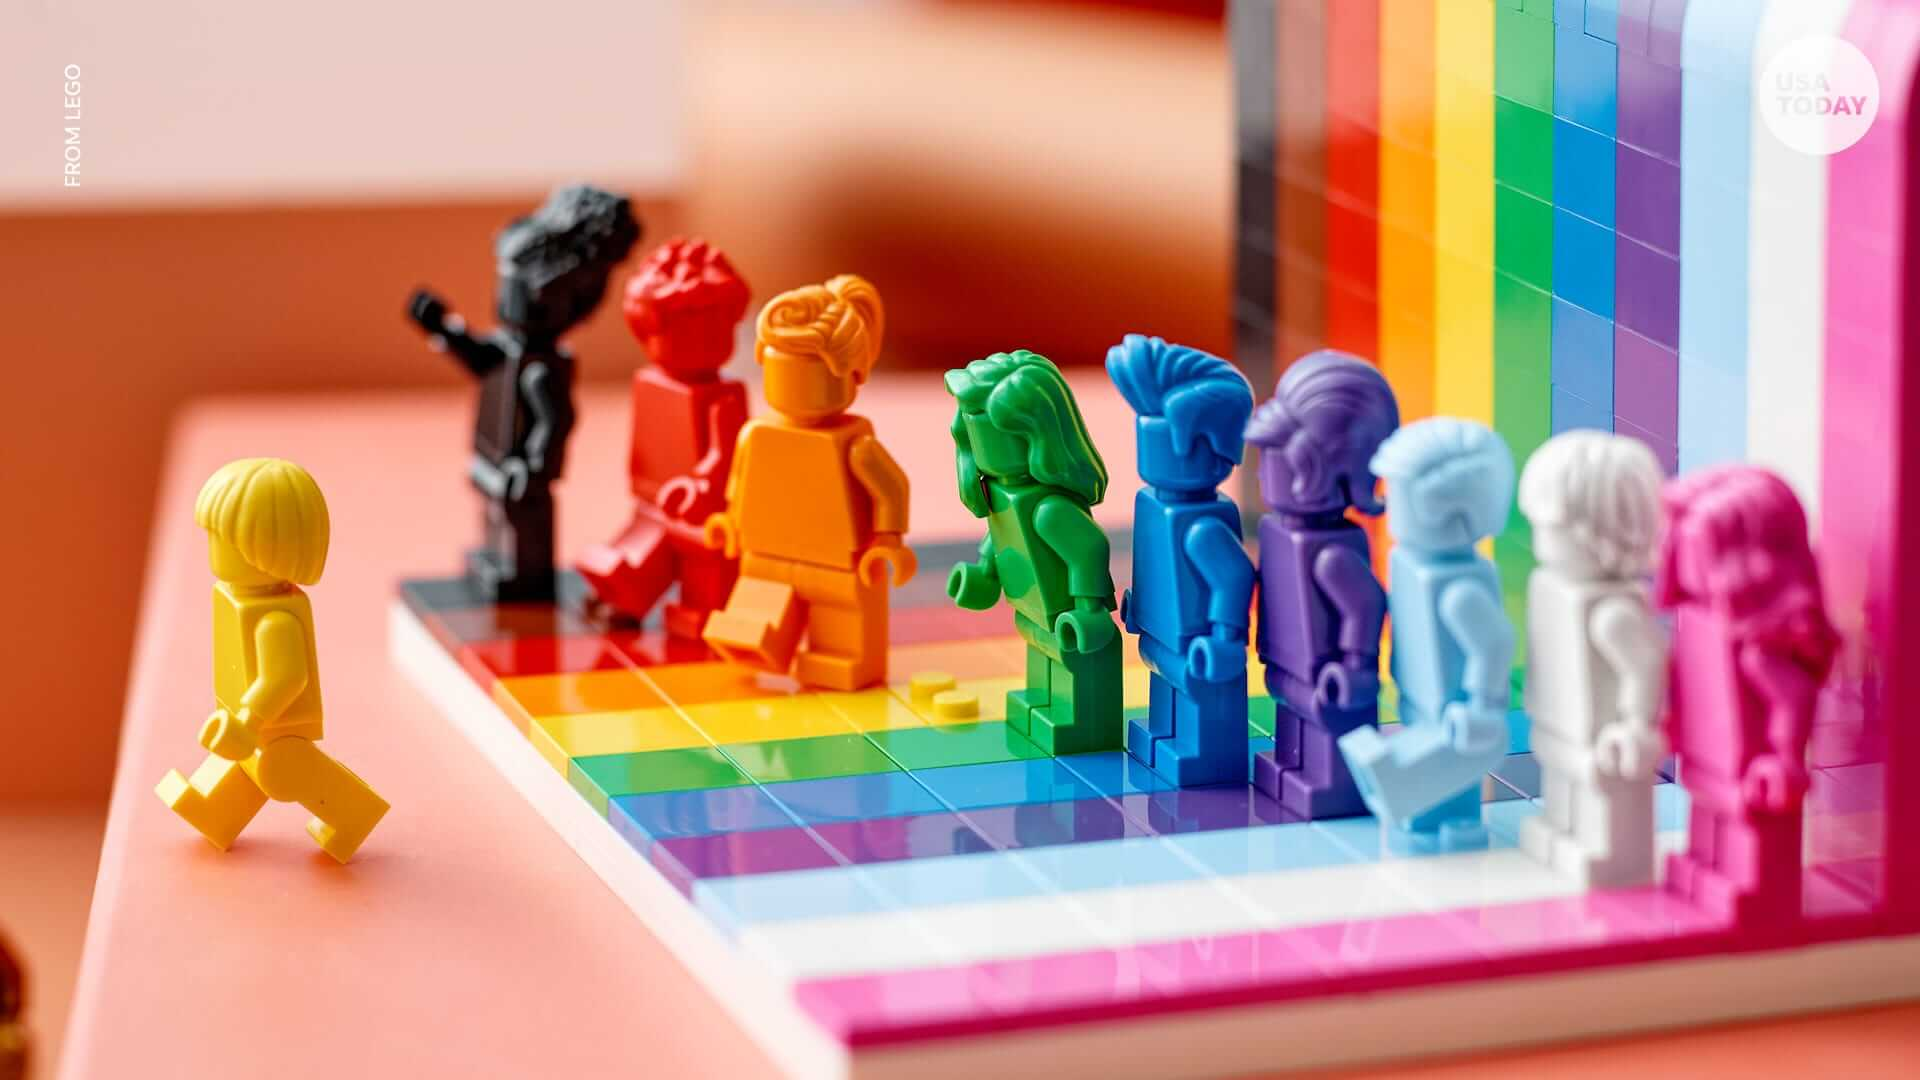 Lego 'Everyone Is Awesome' Set Releases During Pride Month